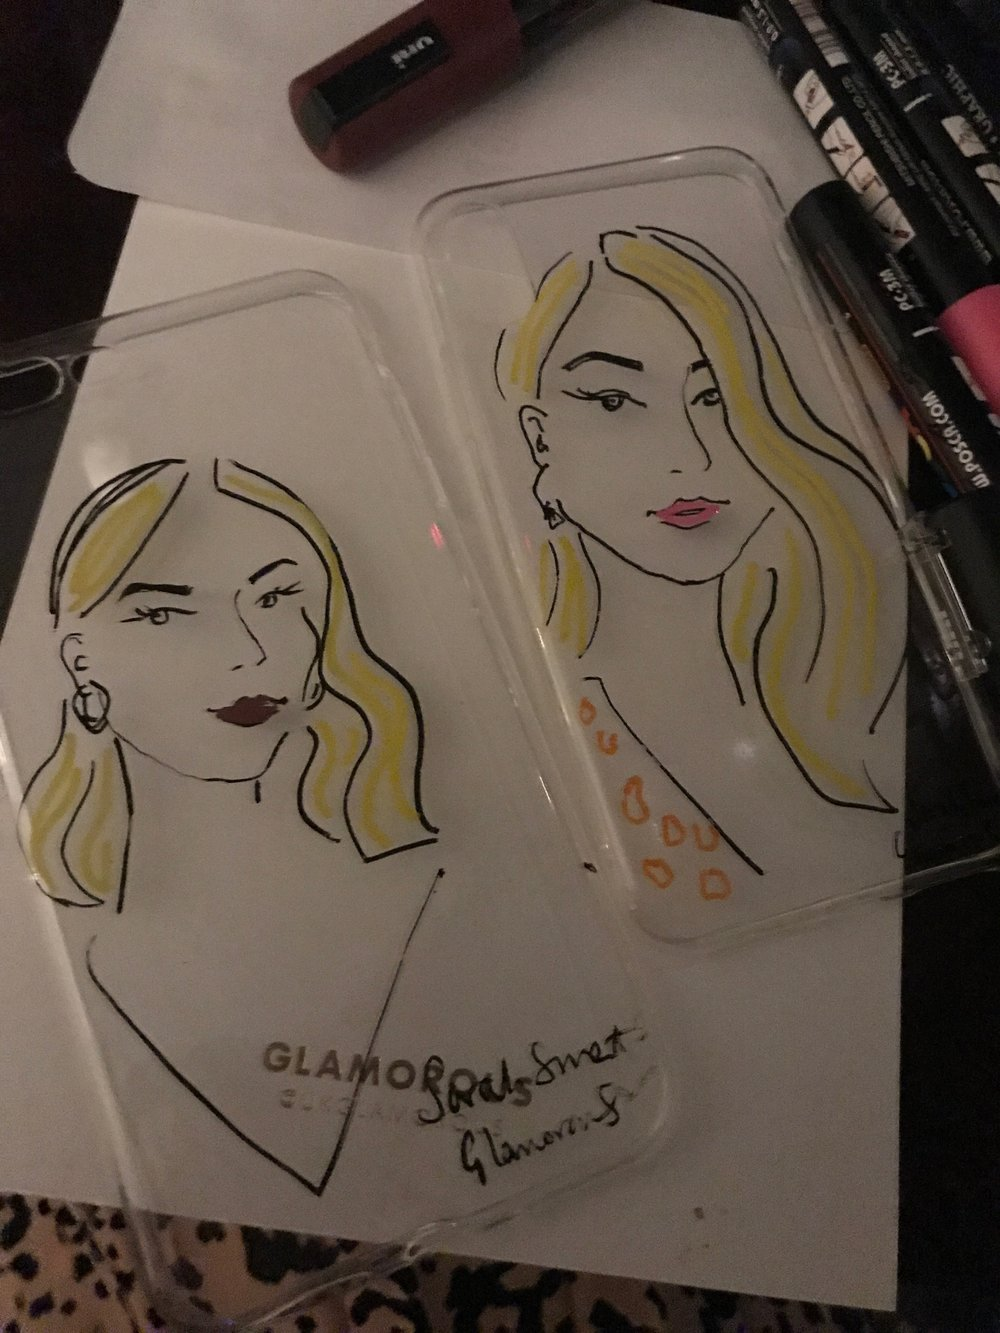 Glamorous AW18 Launch Party Illustrator